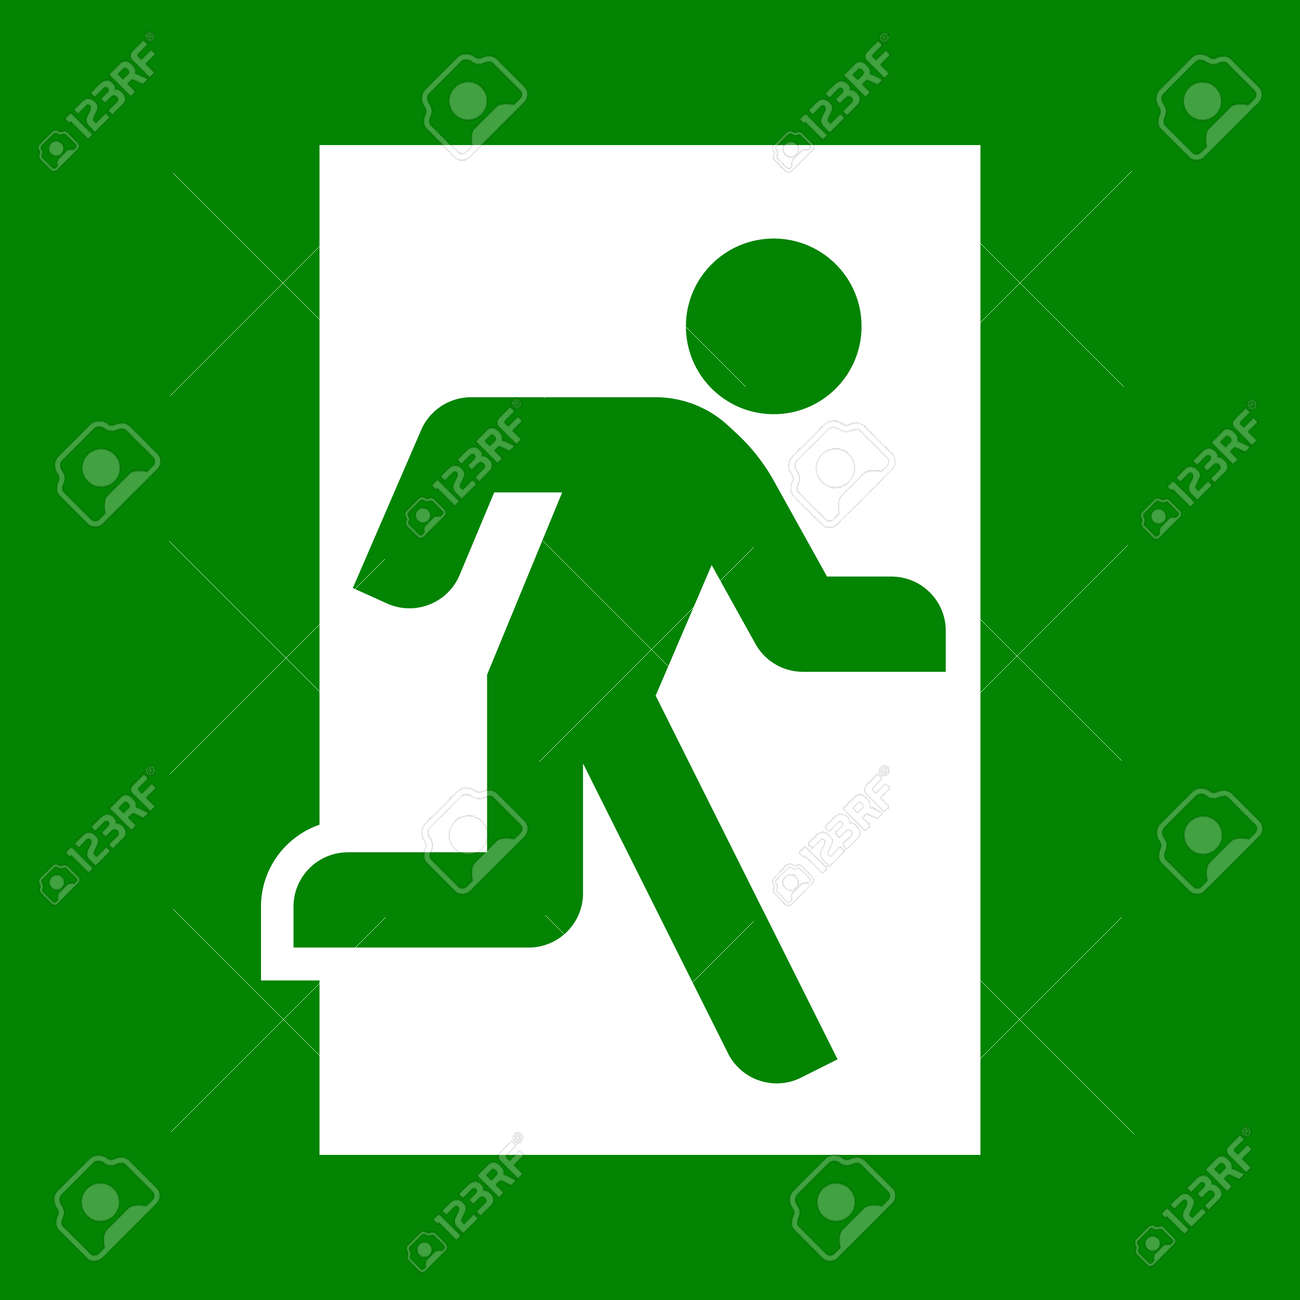 emergency exit sign vector flat illustration royalty free cliparts